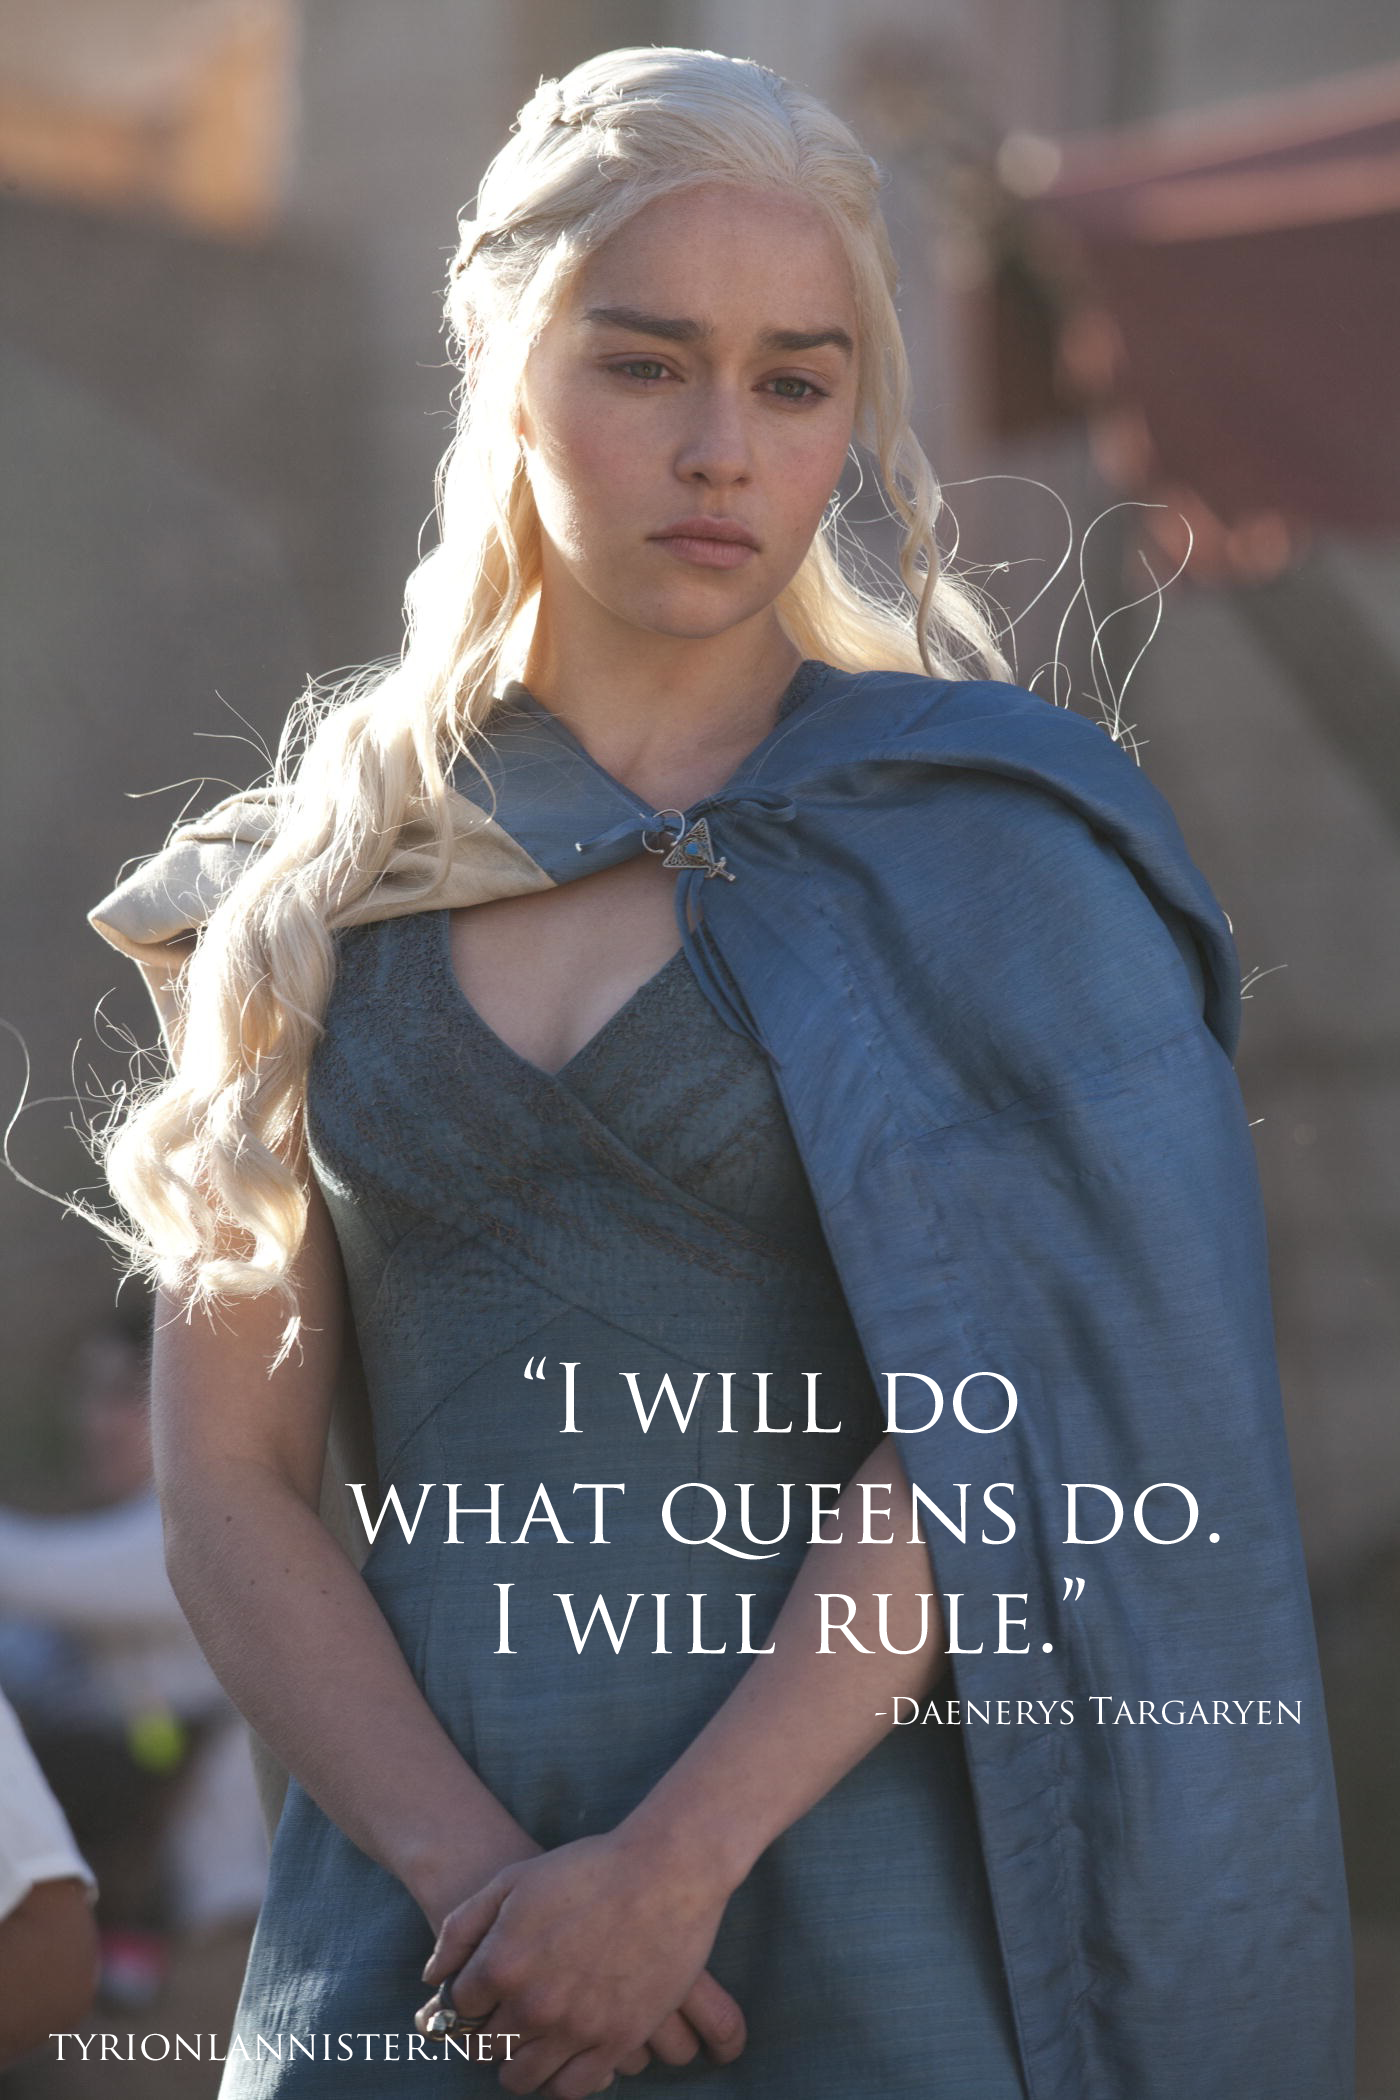 daenerys-I-will-do-what-queens-do-i-will-rule.png